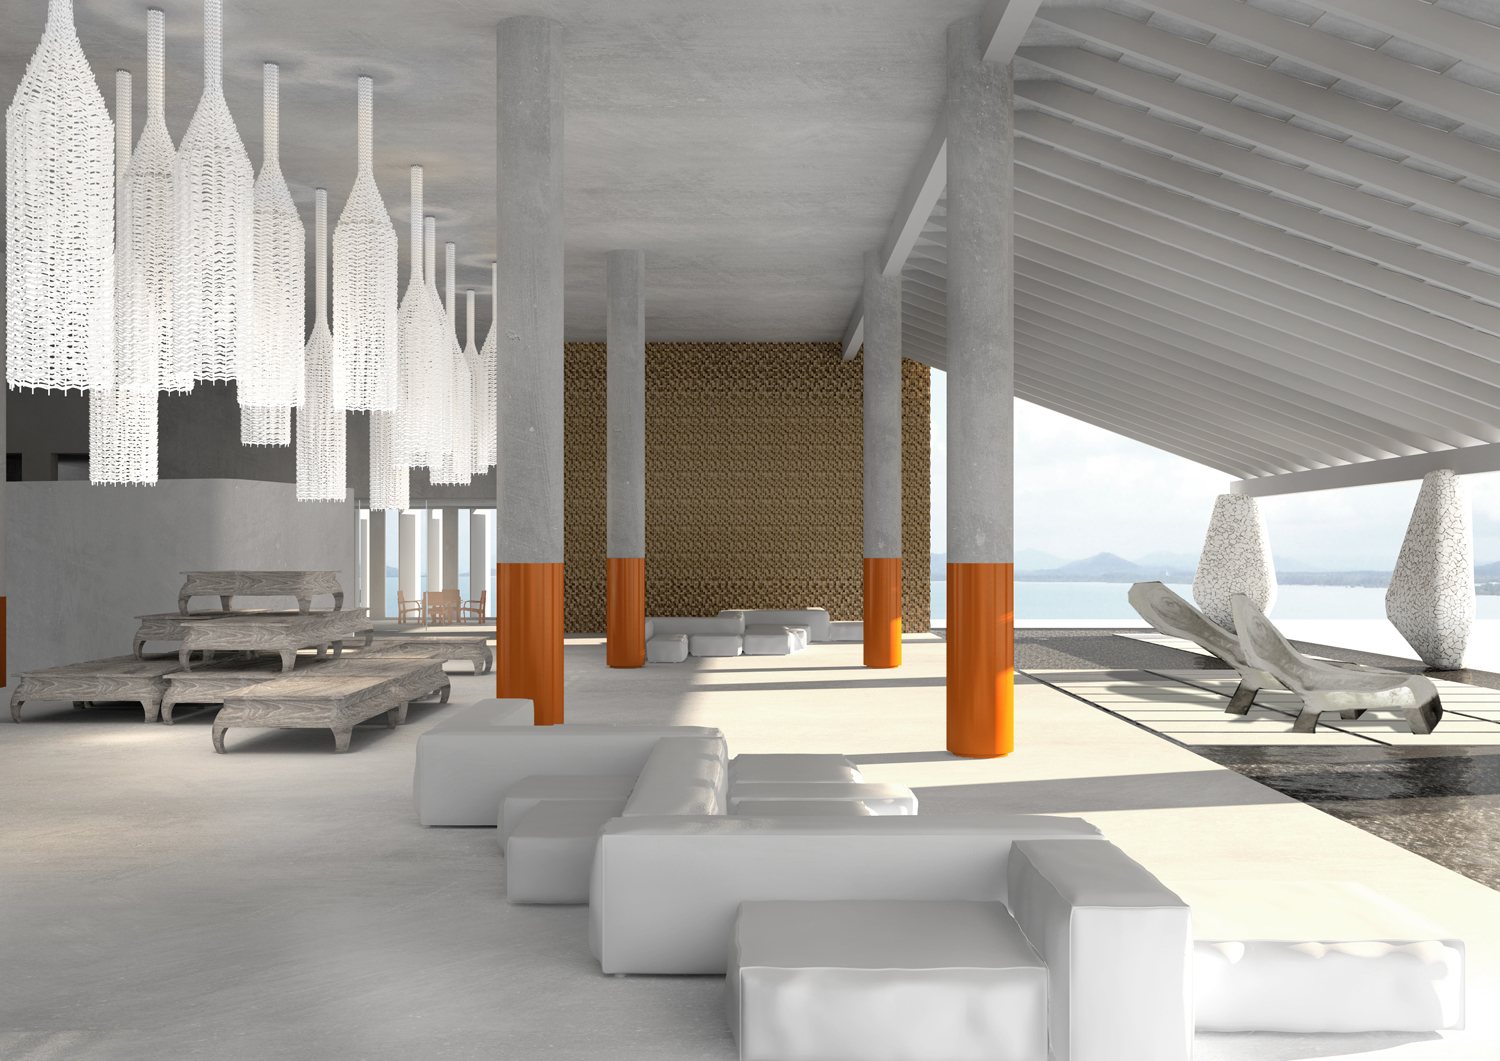 Boasting stellar sea views, this alfresco lounge blends white decor with burnt-orange hits on pillars, a nod to the sun and Buddhist robes. A pyramid of Thai wooden beds and woven details up the wow factor